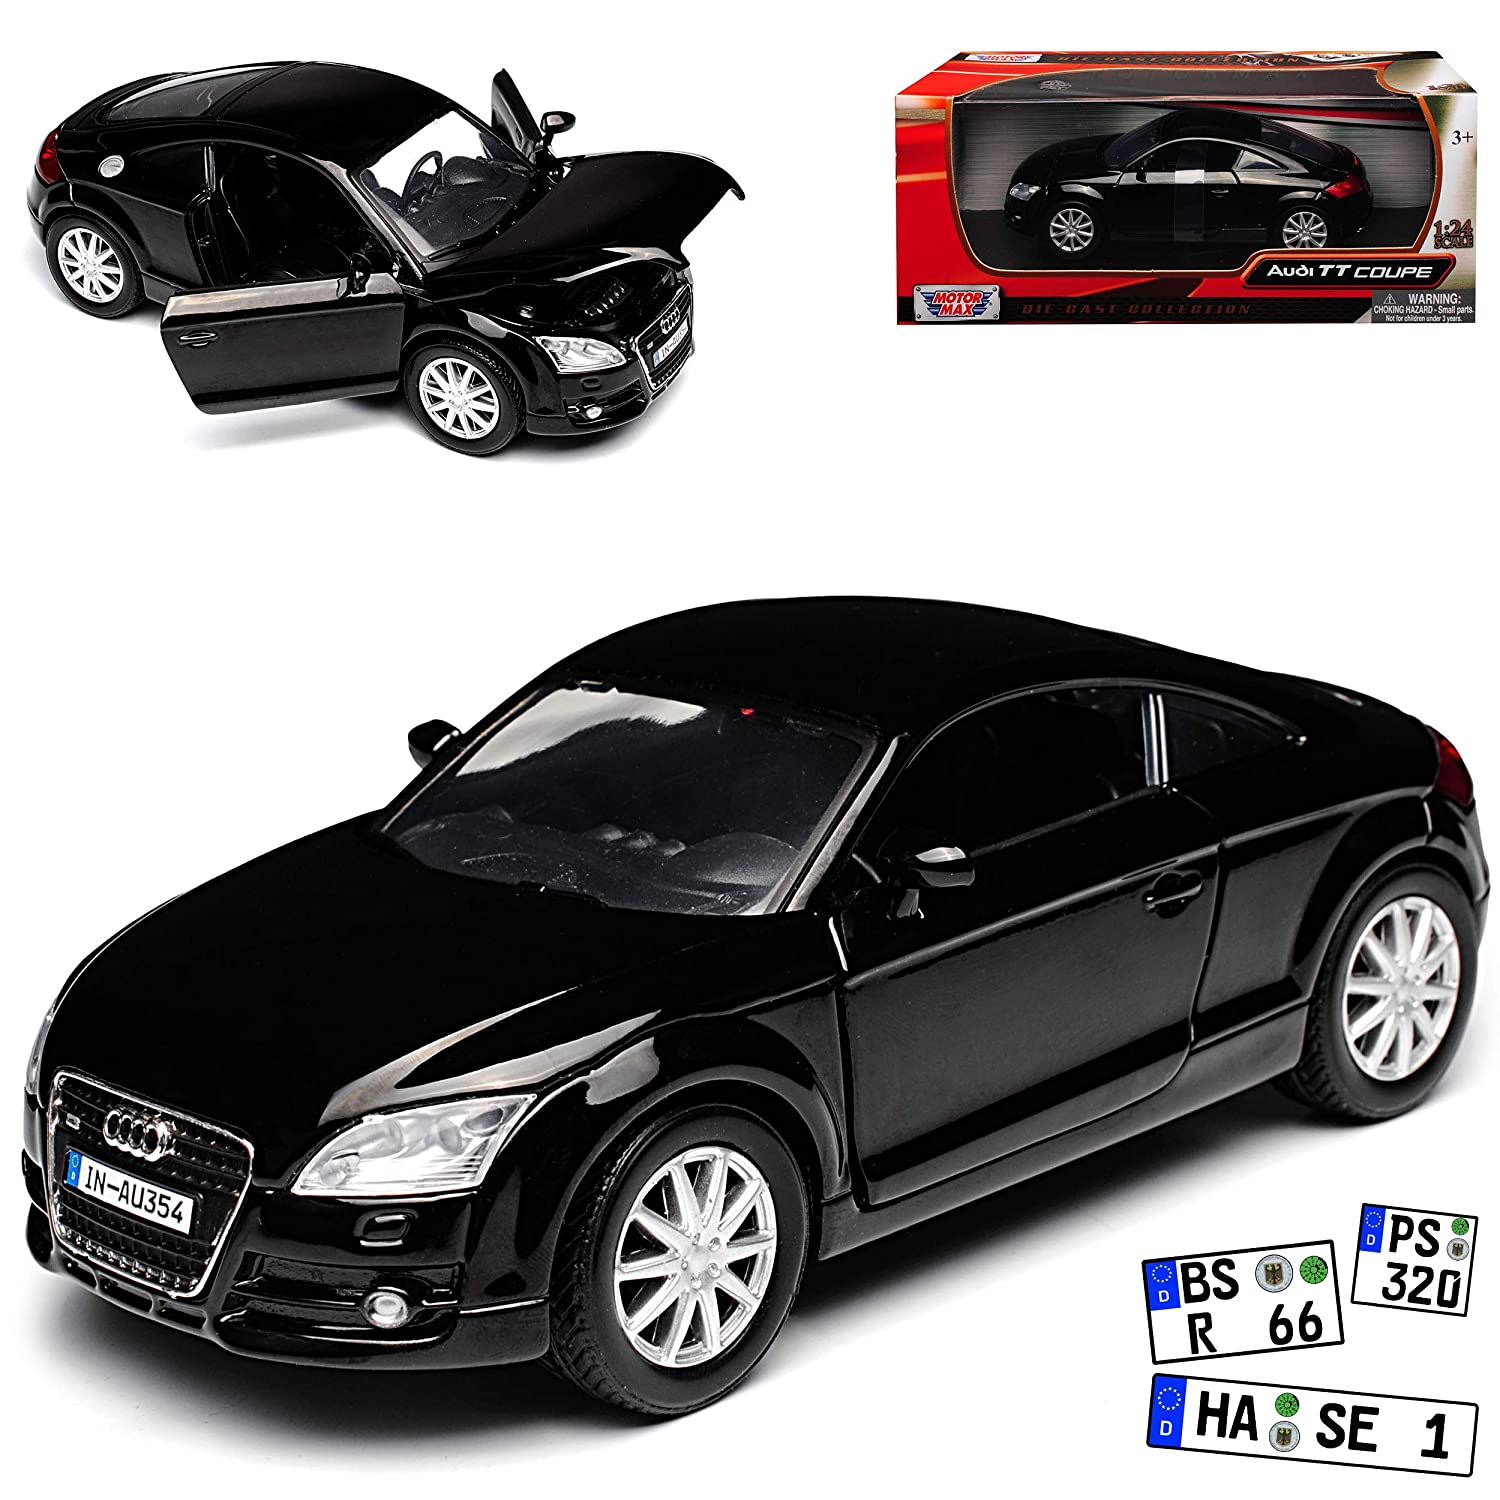 Audi TT 8J Weiss Coupe 2 Generation Ab 2006 1//24 Welly Modell Auto mit oder o..